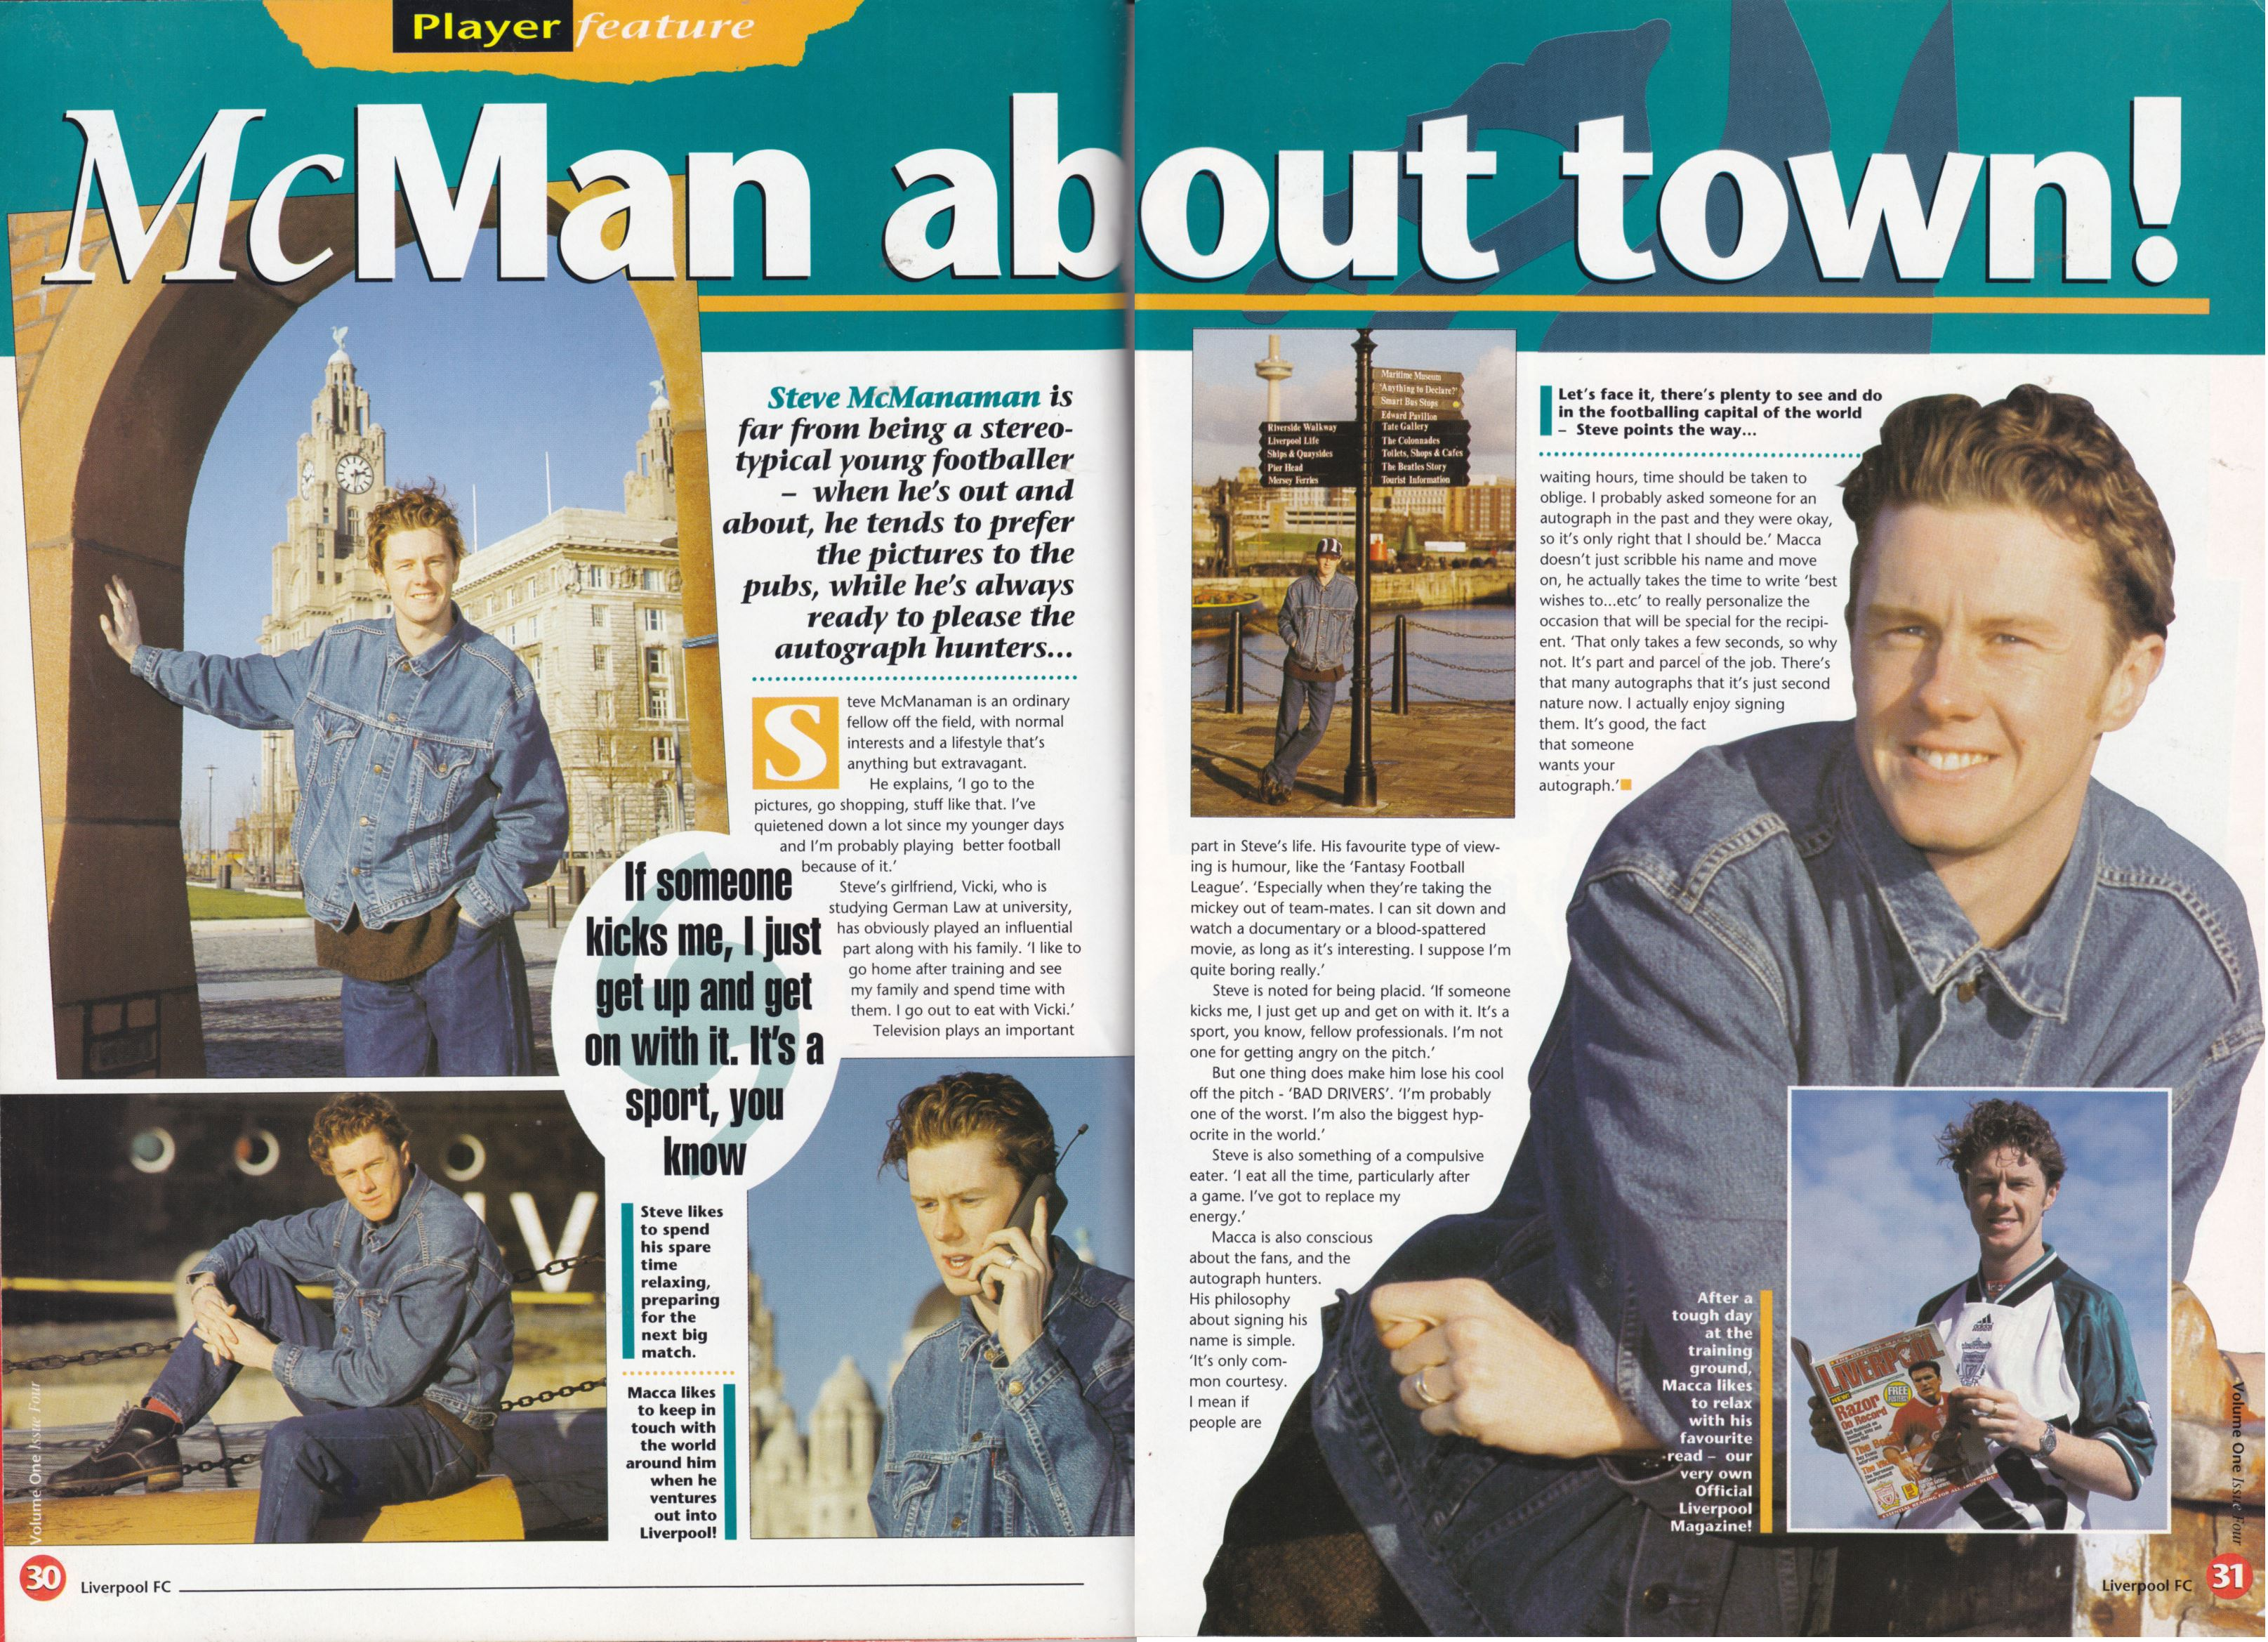 McManaman about town! - The Official Liverpool Magazine 1994/95